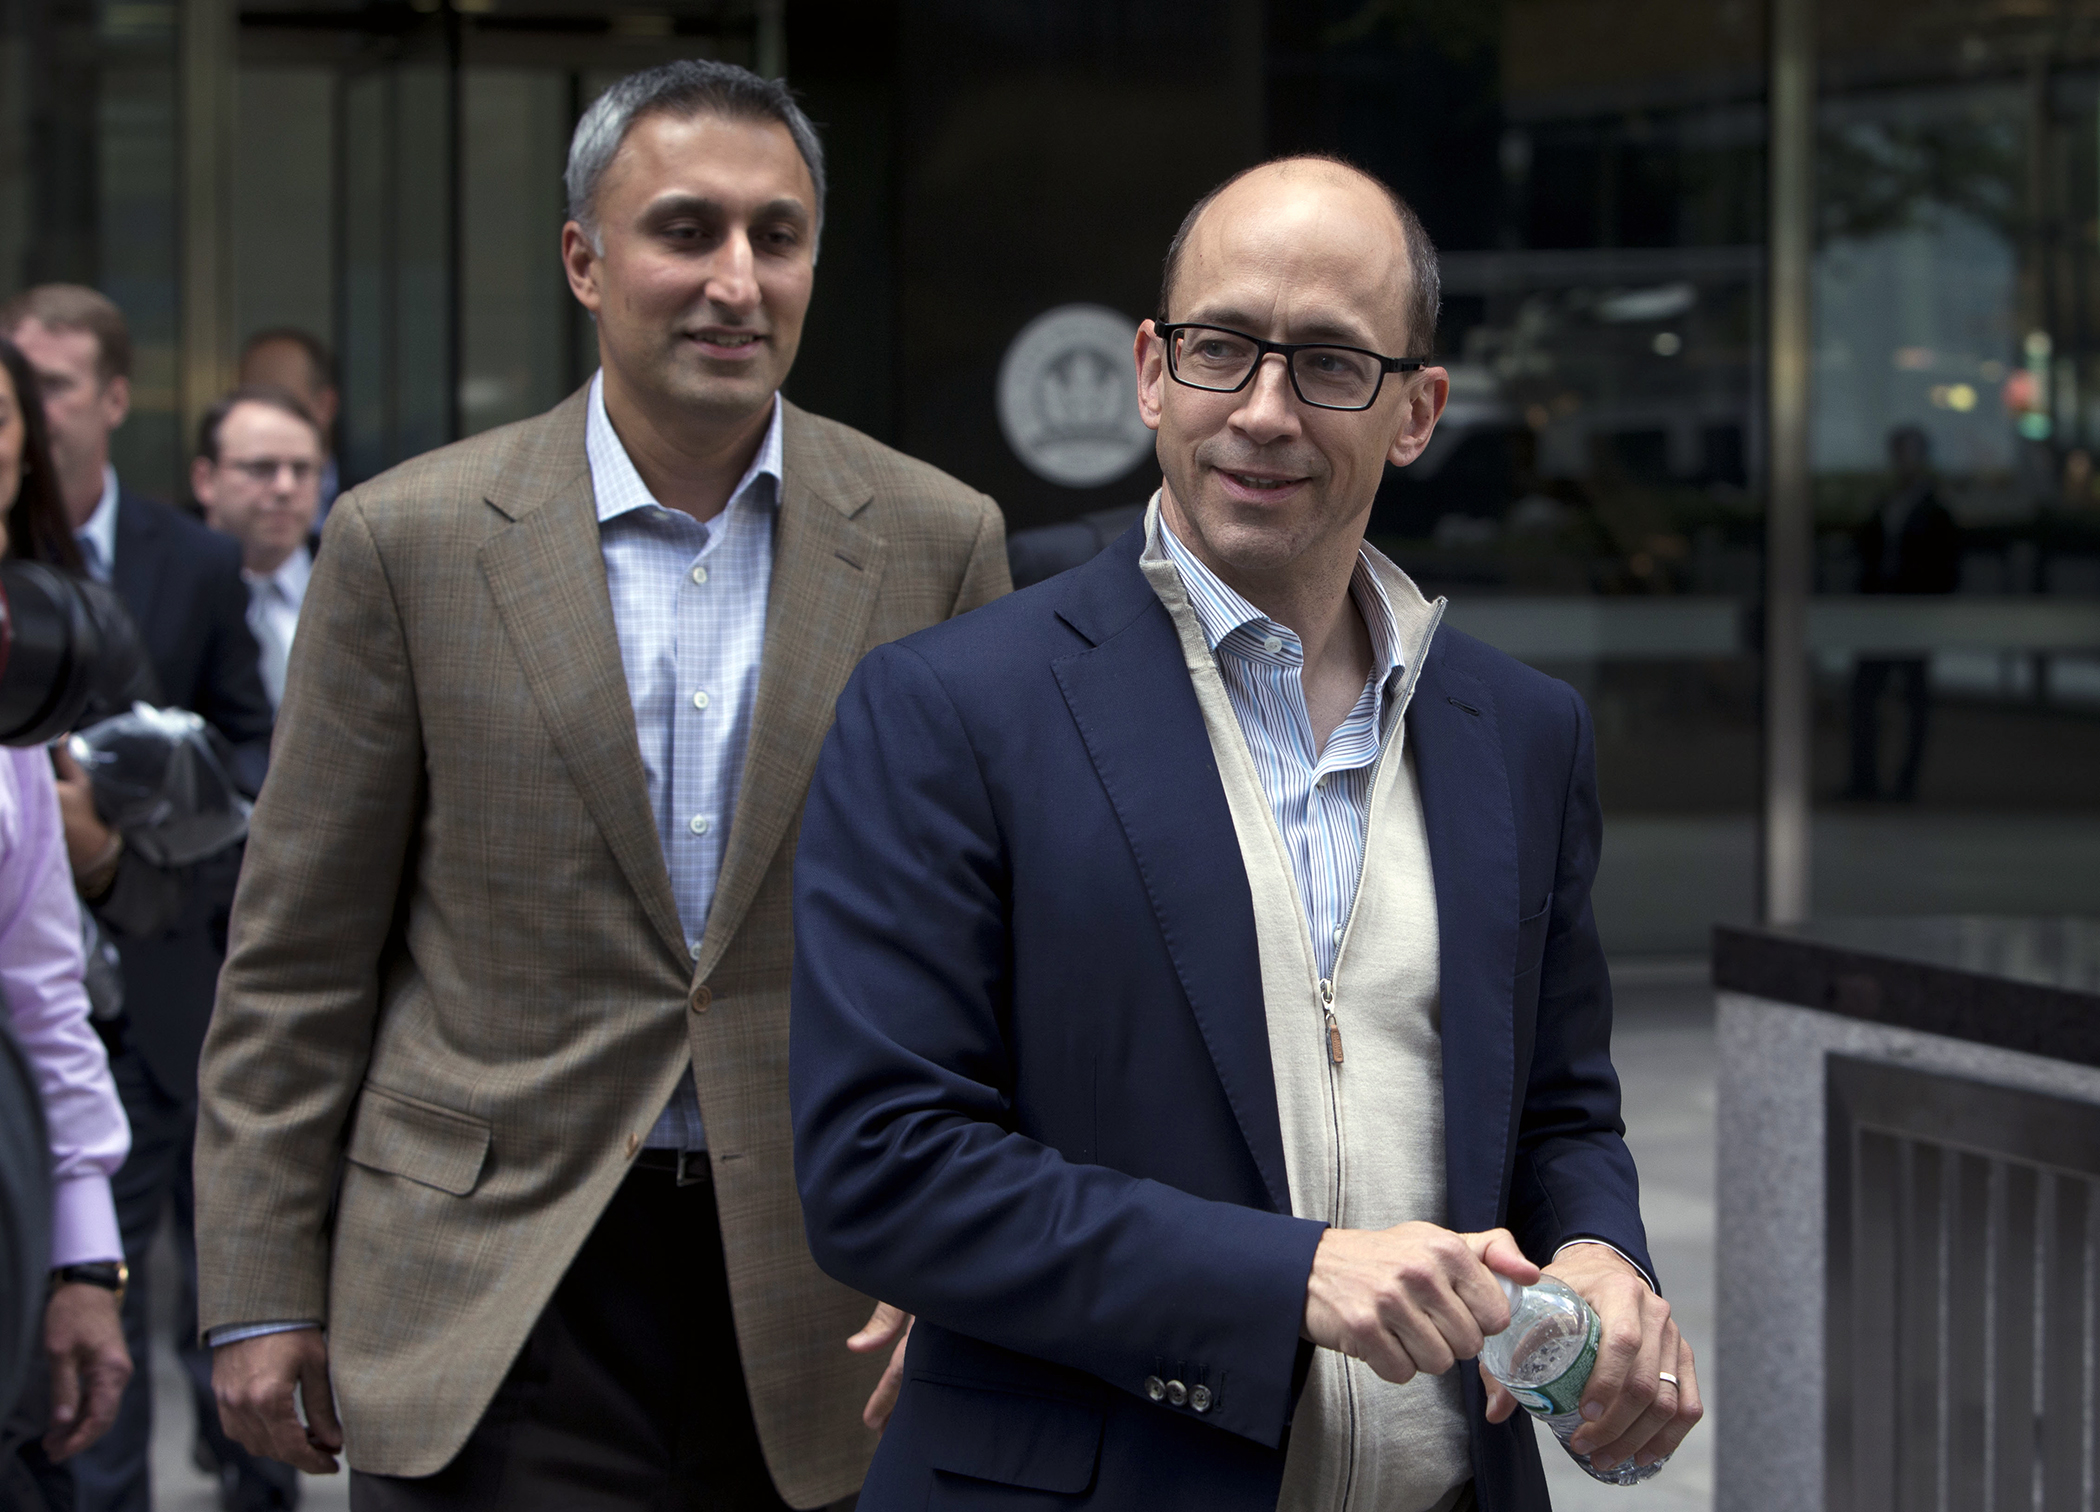 Mike Gupta, chief financial officer of Twitter Inc., left, and Richard  Dick  Costolo, chief executive officer of Twitter Inc., exit JPMorgan Chase & Co. headquarters in New York, U.S., on Friday, Oct. 25, 2013. Twitter Inc. will make the case to potential investors in its initial public offering that it needs to keep spending to grow, and profit will come once it can reap the benefits of those investments.